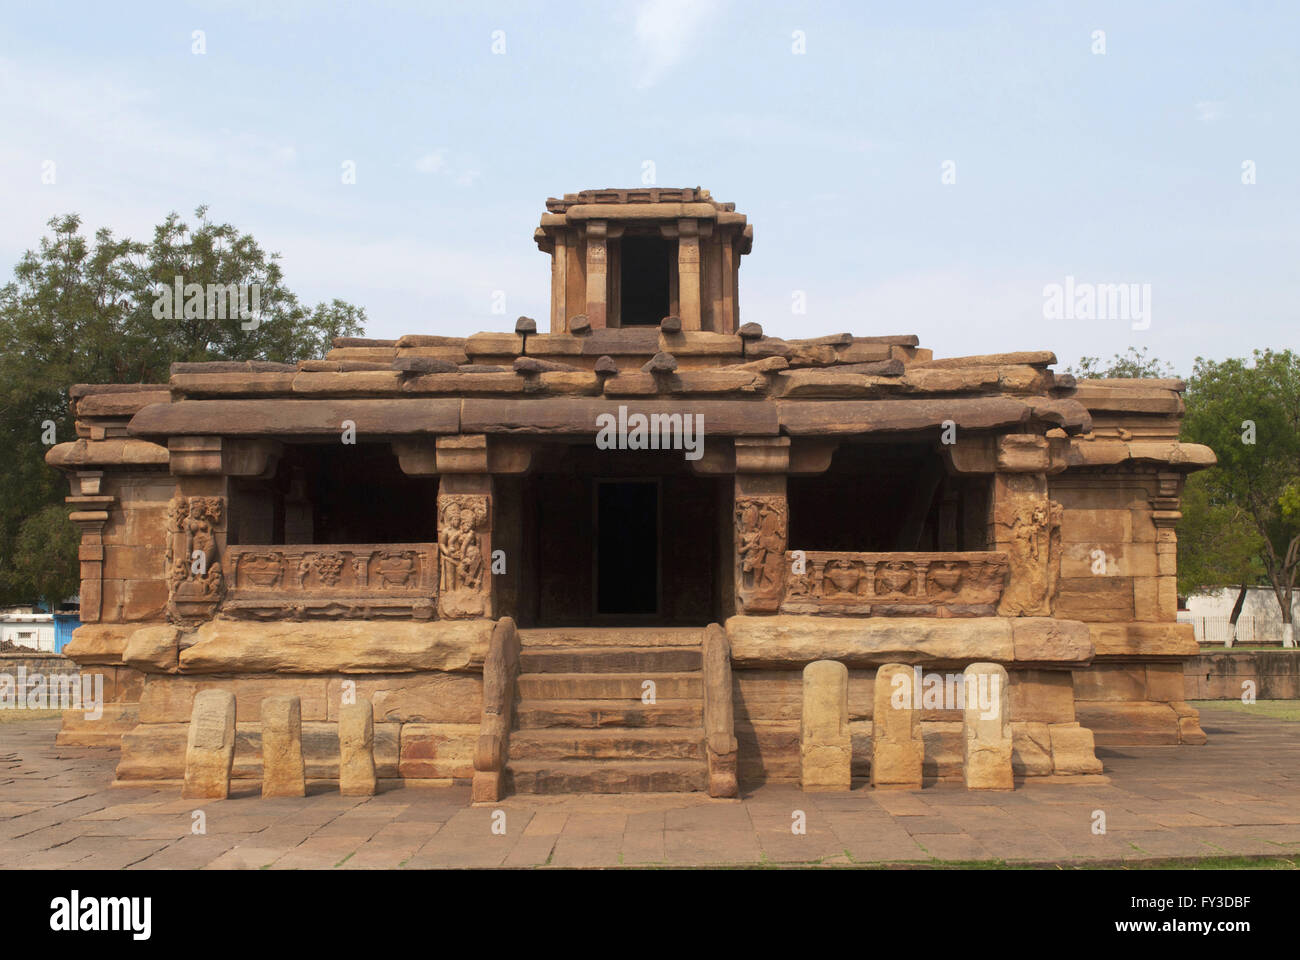 Front view of Lad Khan temple, Aihole, Bagalkot, Karnataka, India. Kontigudi group of temples. This is the oldest - Stock Image